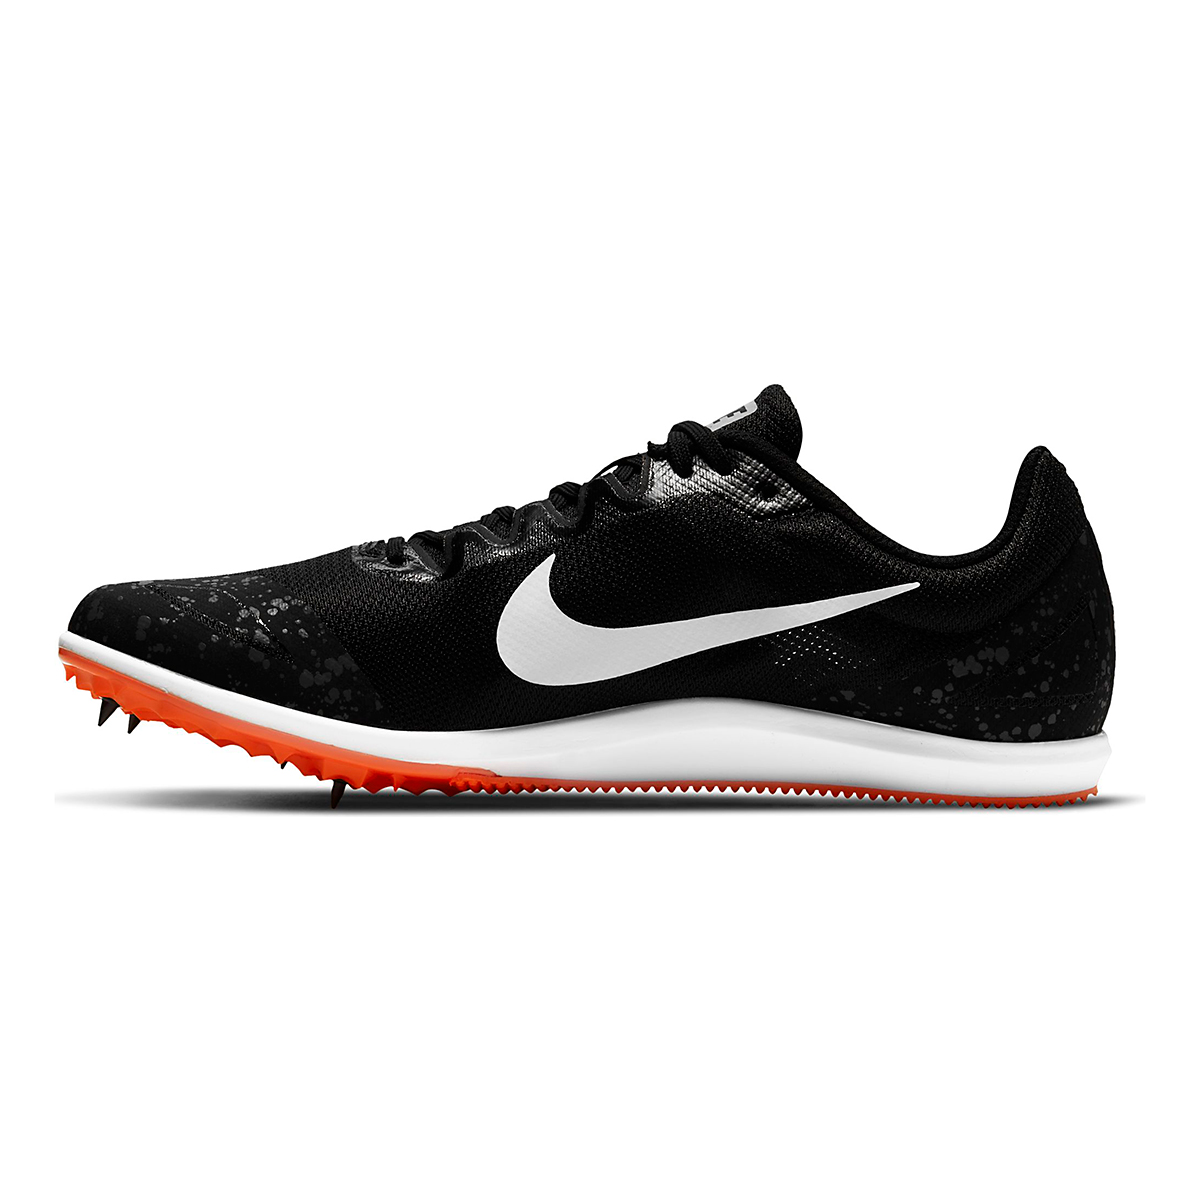 Nike Zoom Rival D 10 Track Spikes - Color: Black/White/Iron Grey/Hyper Crimson - Size: M4/W5.5 - Width: Regular, Black/White/Iron Grey/Hyper Crimson, large, image 2